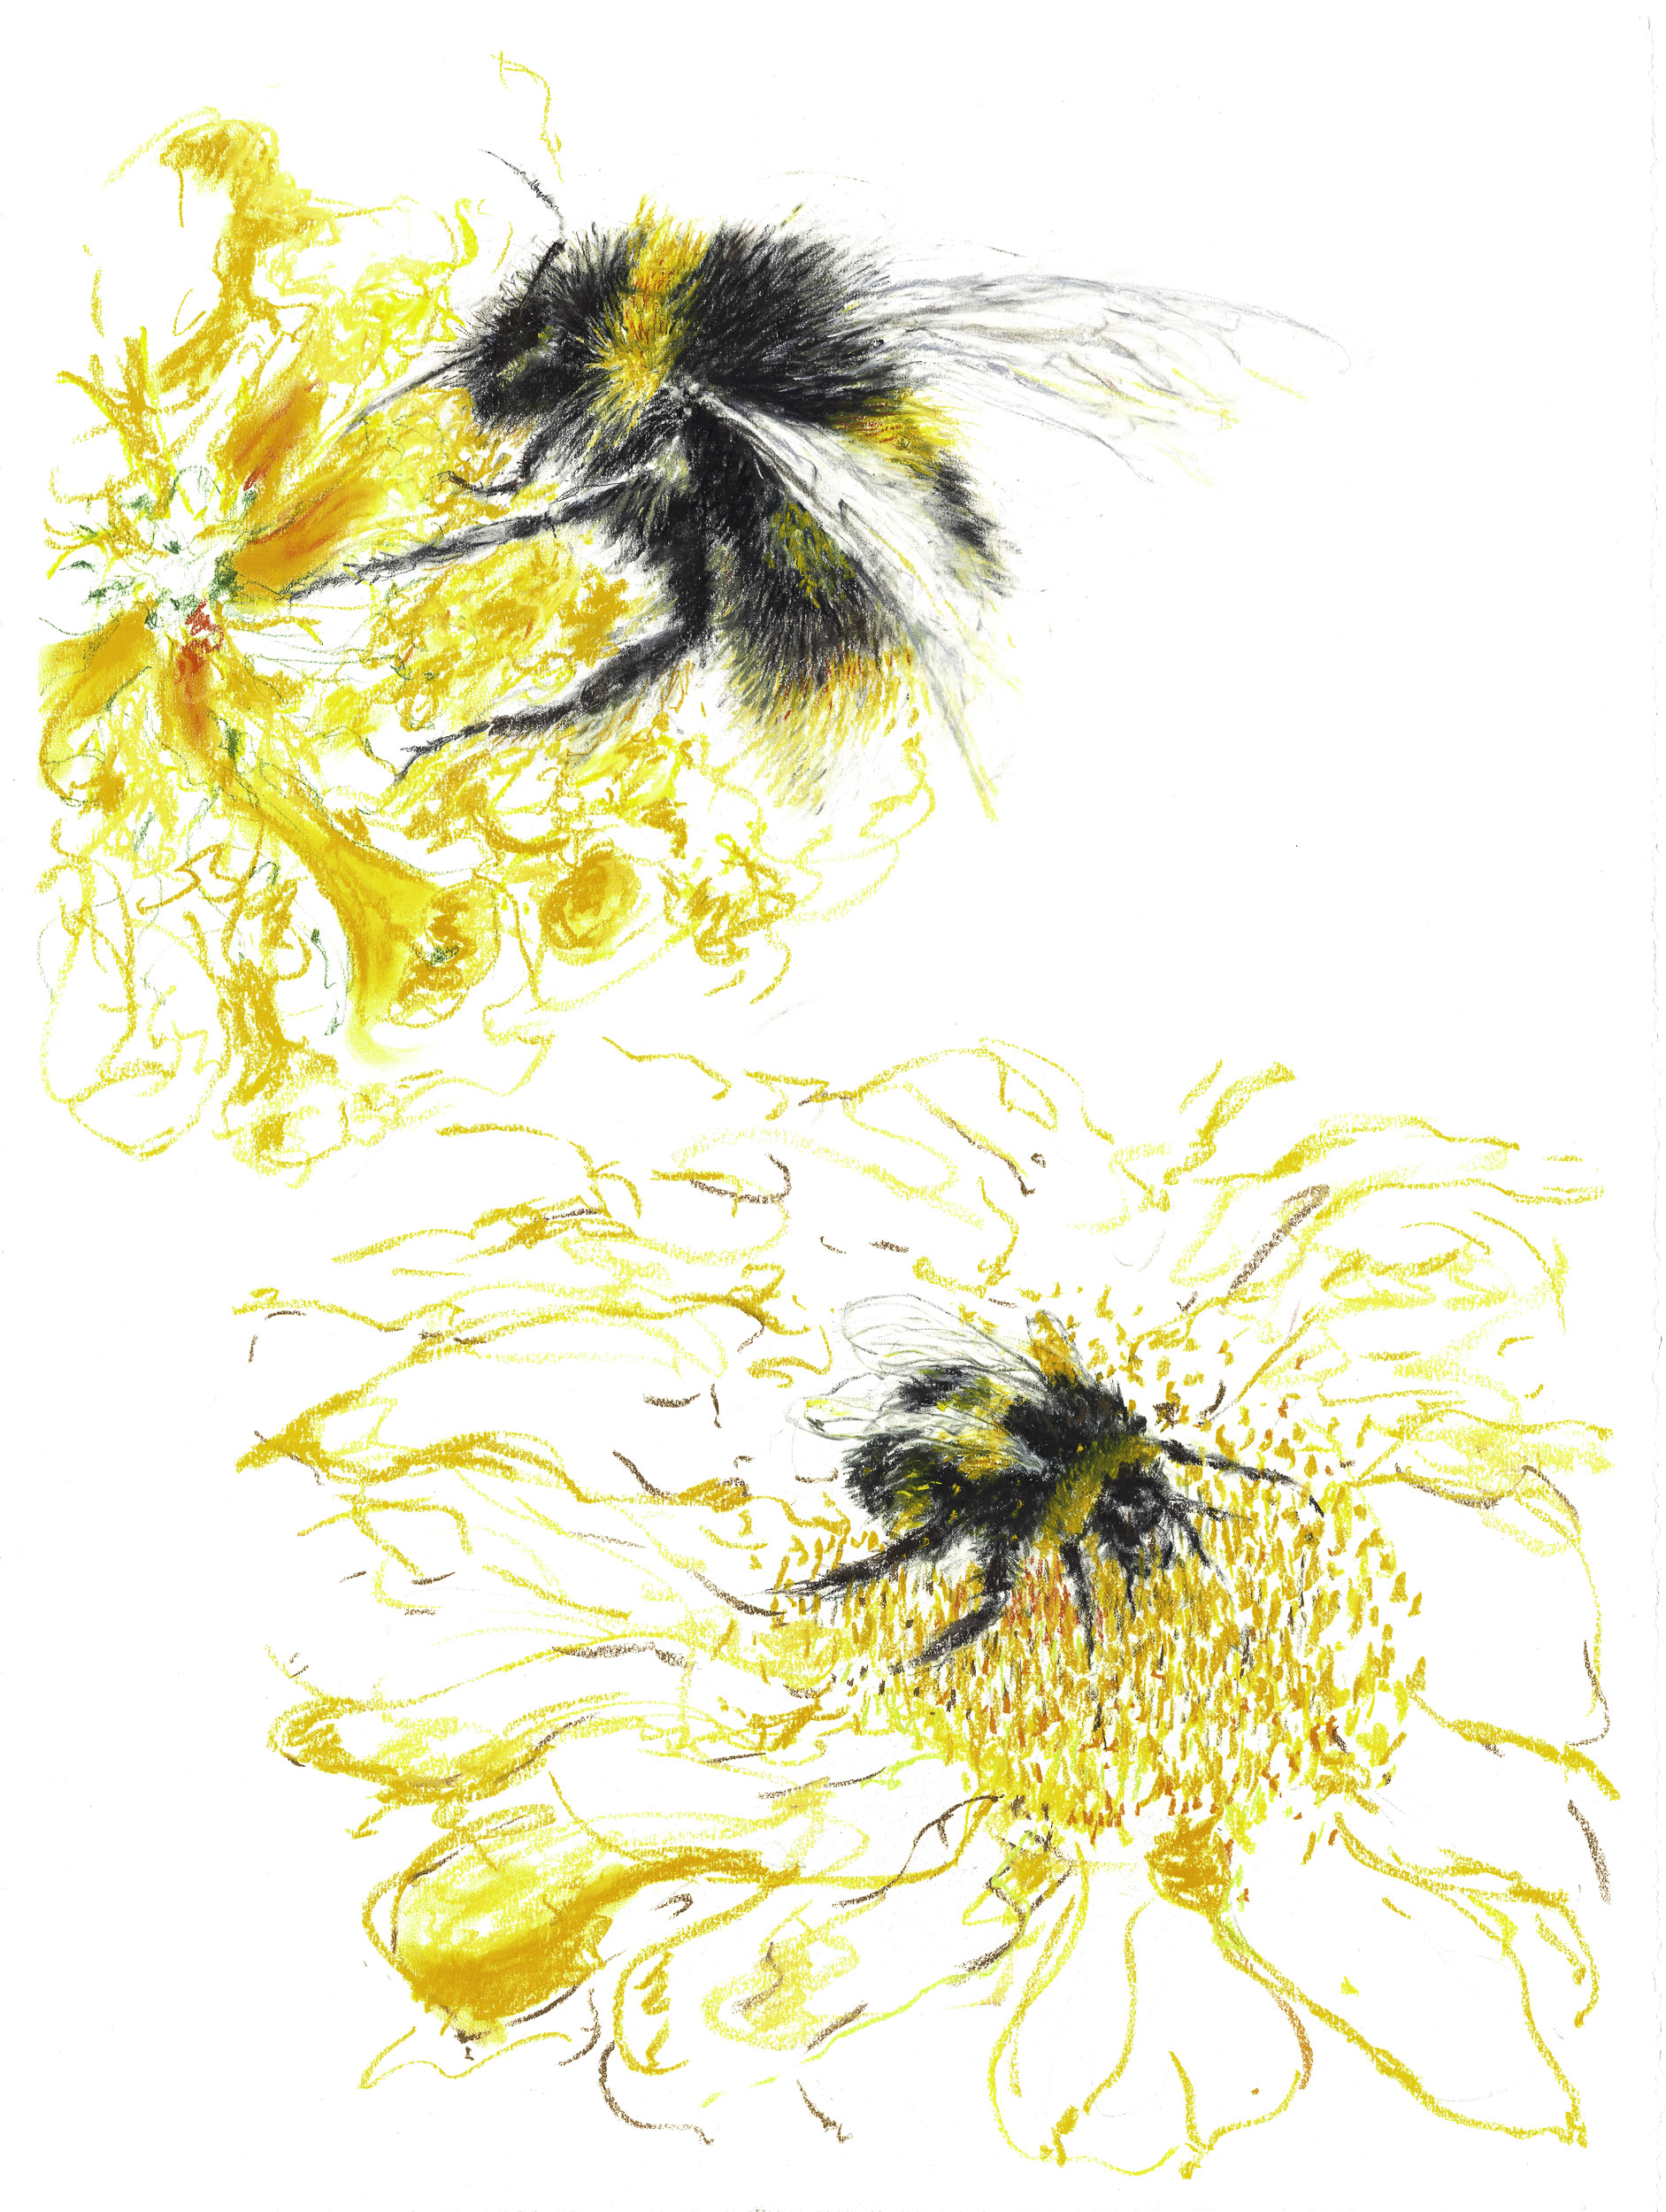 Bumble Bee pollinating for Website-0002.jpg